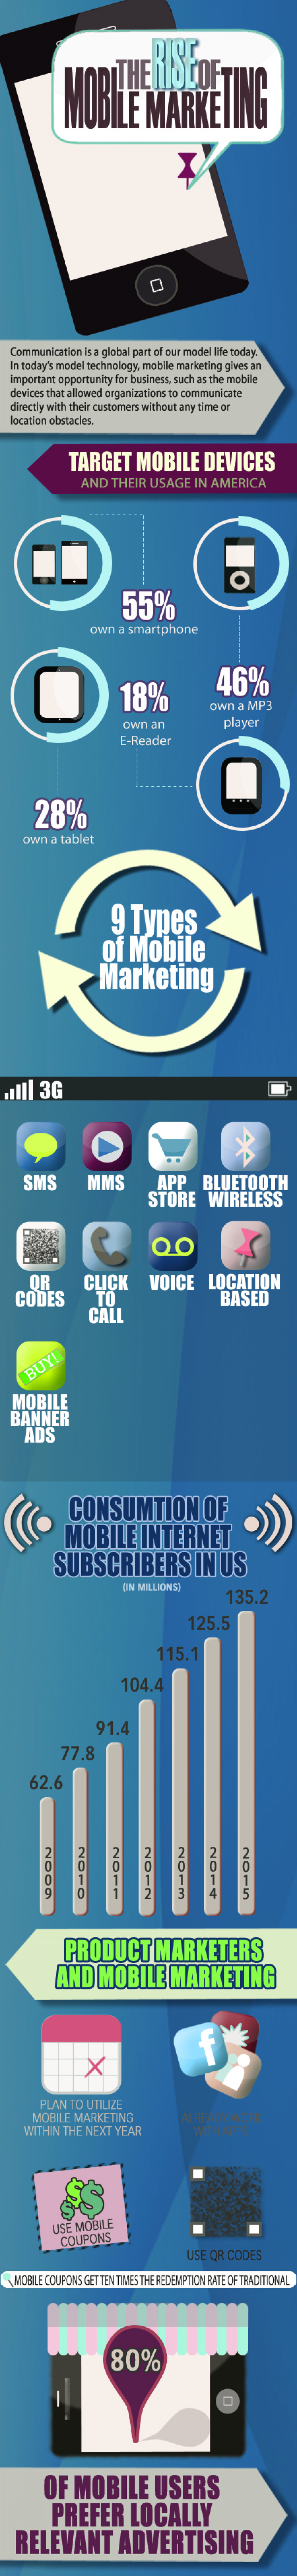 Rise of Mobile Marketing Infographic